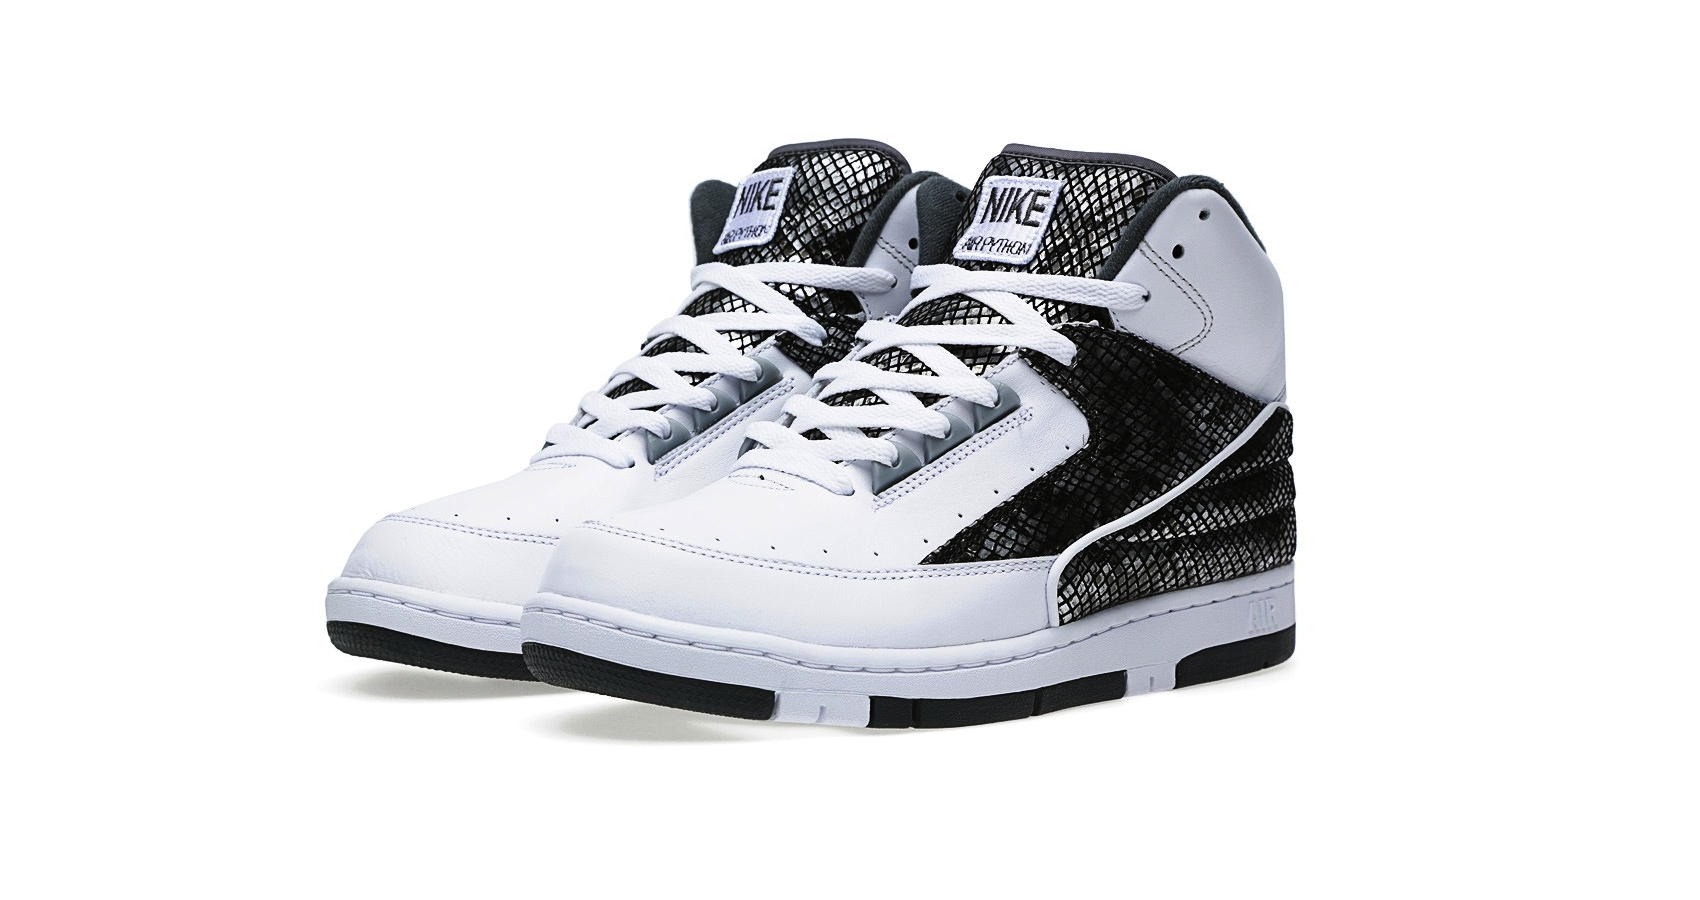 Nike Air Python SP White and Metallic Silver